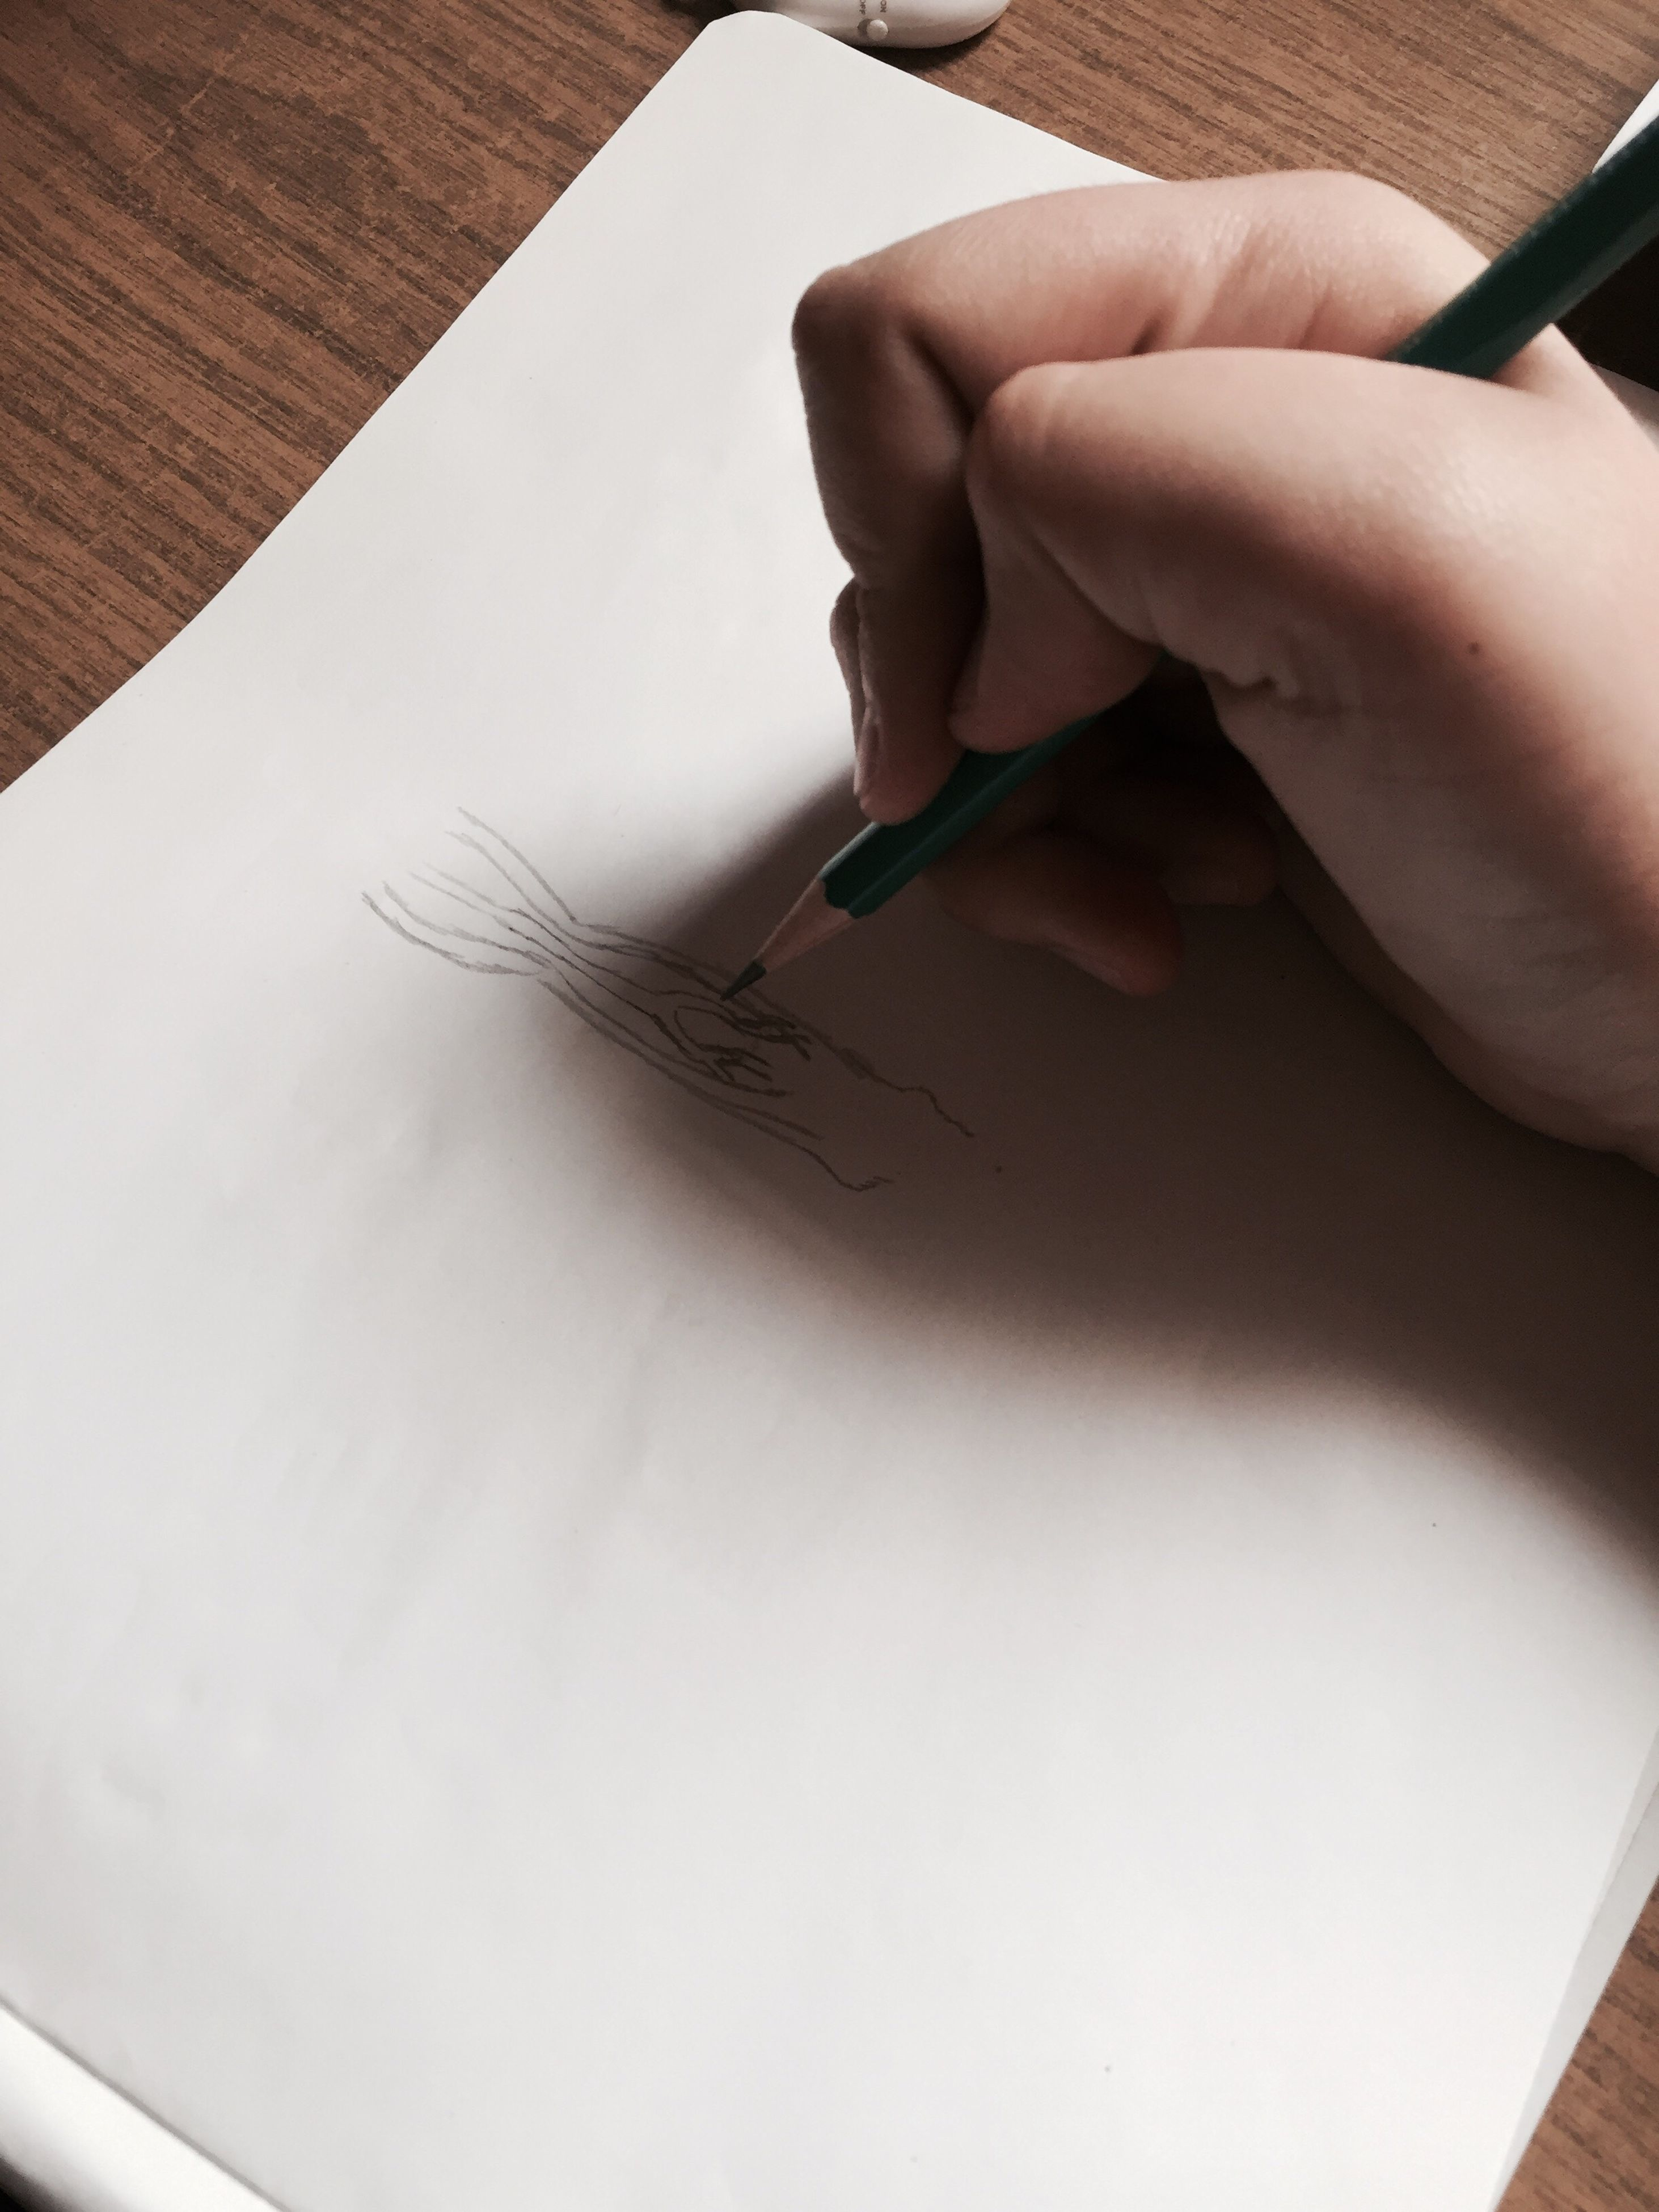 paper, real people, human hand, indoors, one person, close-up, drawing - activity, pencil drawing, human body part, day